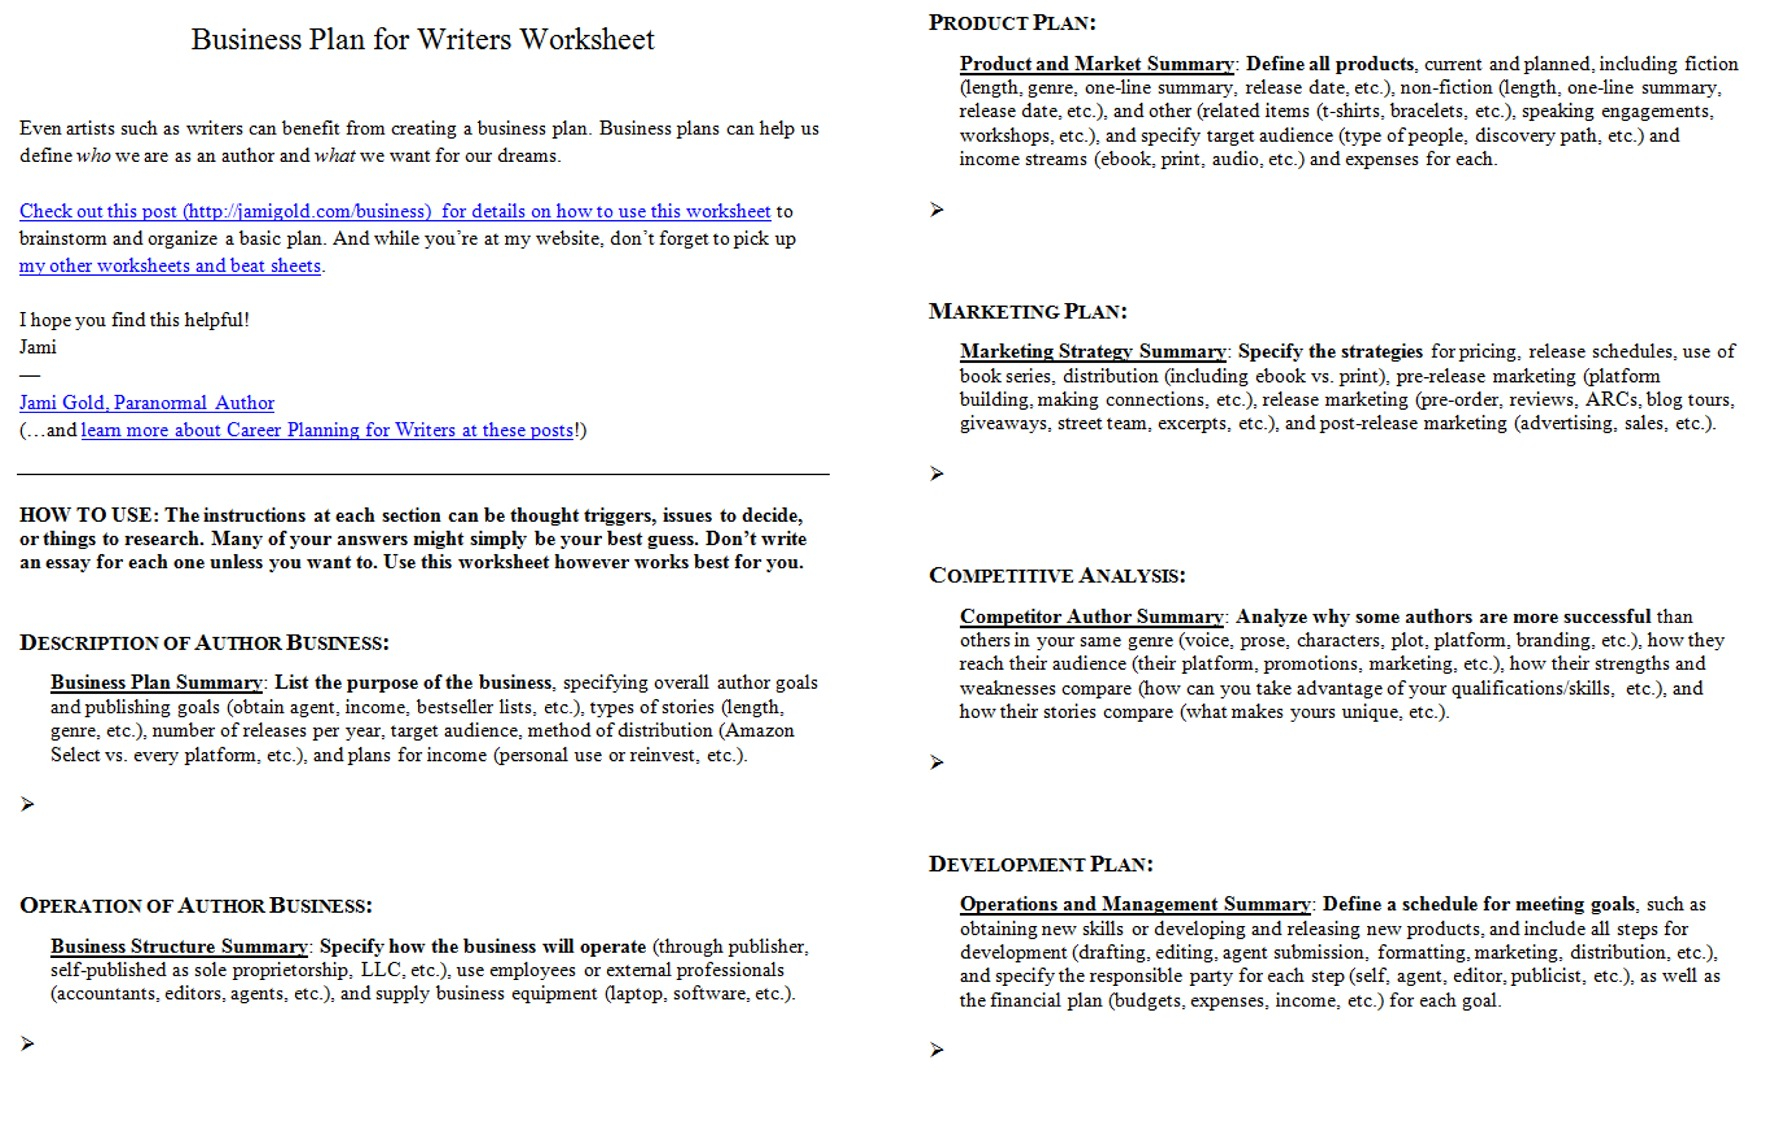 Weirdmailus  Remarkable Worksheets For Writers  Jami Gold Paranormal Author With Engaging Screen Shot Of Both Pages Of The Business Plan For Writers Worksheet With Breathtaking Cause And Effect Connectives Worksheet Also Maths Worksheets Kids In Addition Worksheets On Surface Area And Missing Numbers On Number Line Worksheets As Well As Law Of Exponents Worksheets Additionally Weather Worksheets For Th Grade From Jamigoldcom With Weirdmailus  Engaging Worksheets For Writers  Jami Gold Paranormal Author With Breathtaking Screen Shot Of Both Pages Of The Business Plan For Writers Worksheet And Remarkable Cause And Effect Connectives Worksheet Also Maths Worksheets Kids In Addition Worksheets On Surface Area From Jamigoldcom